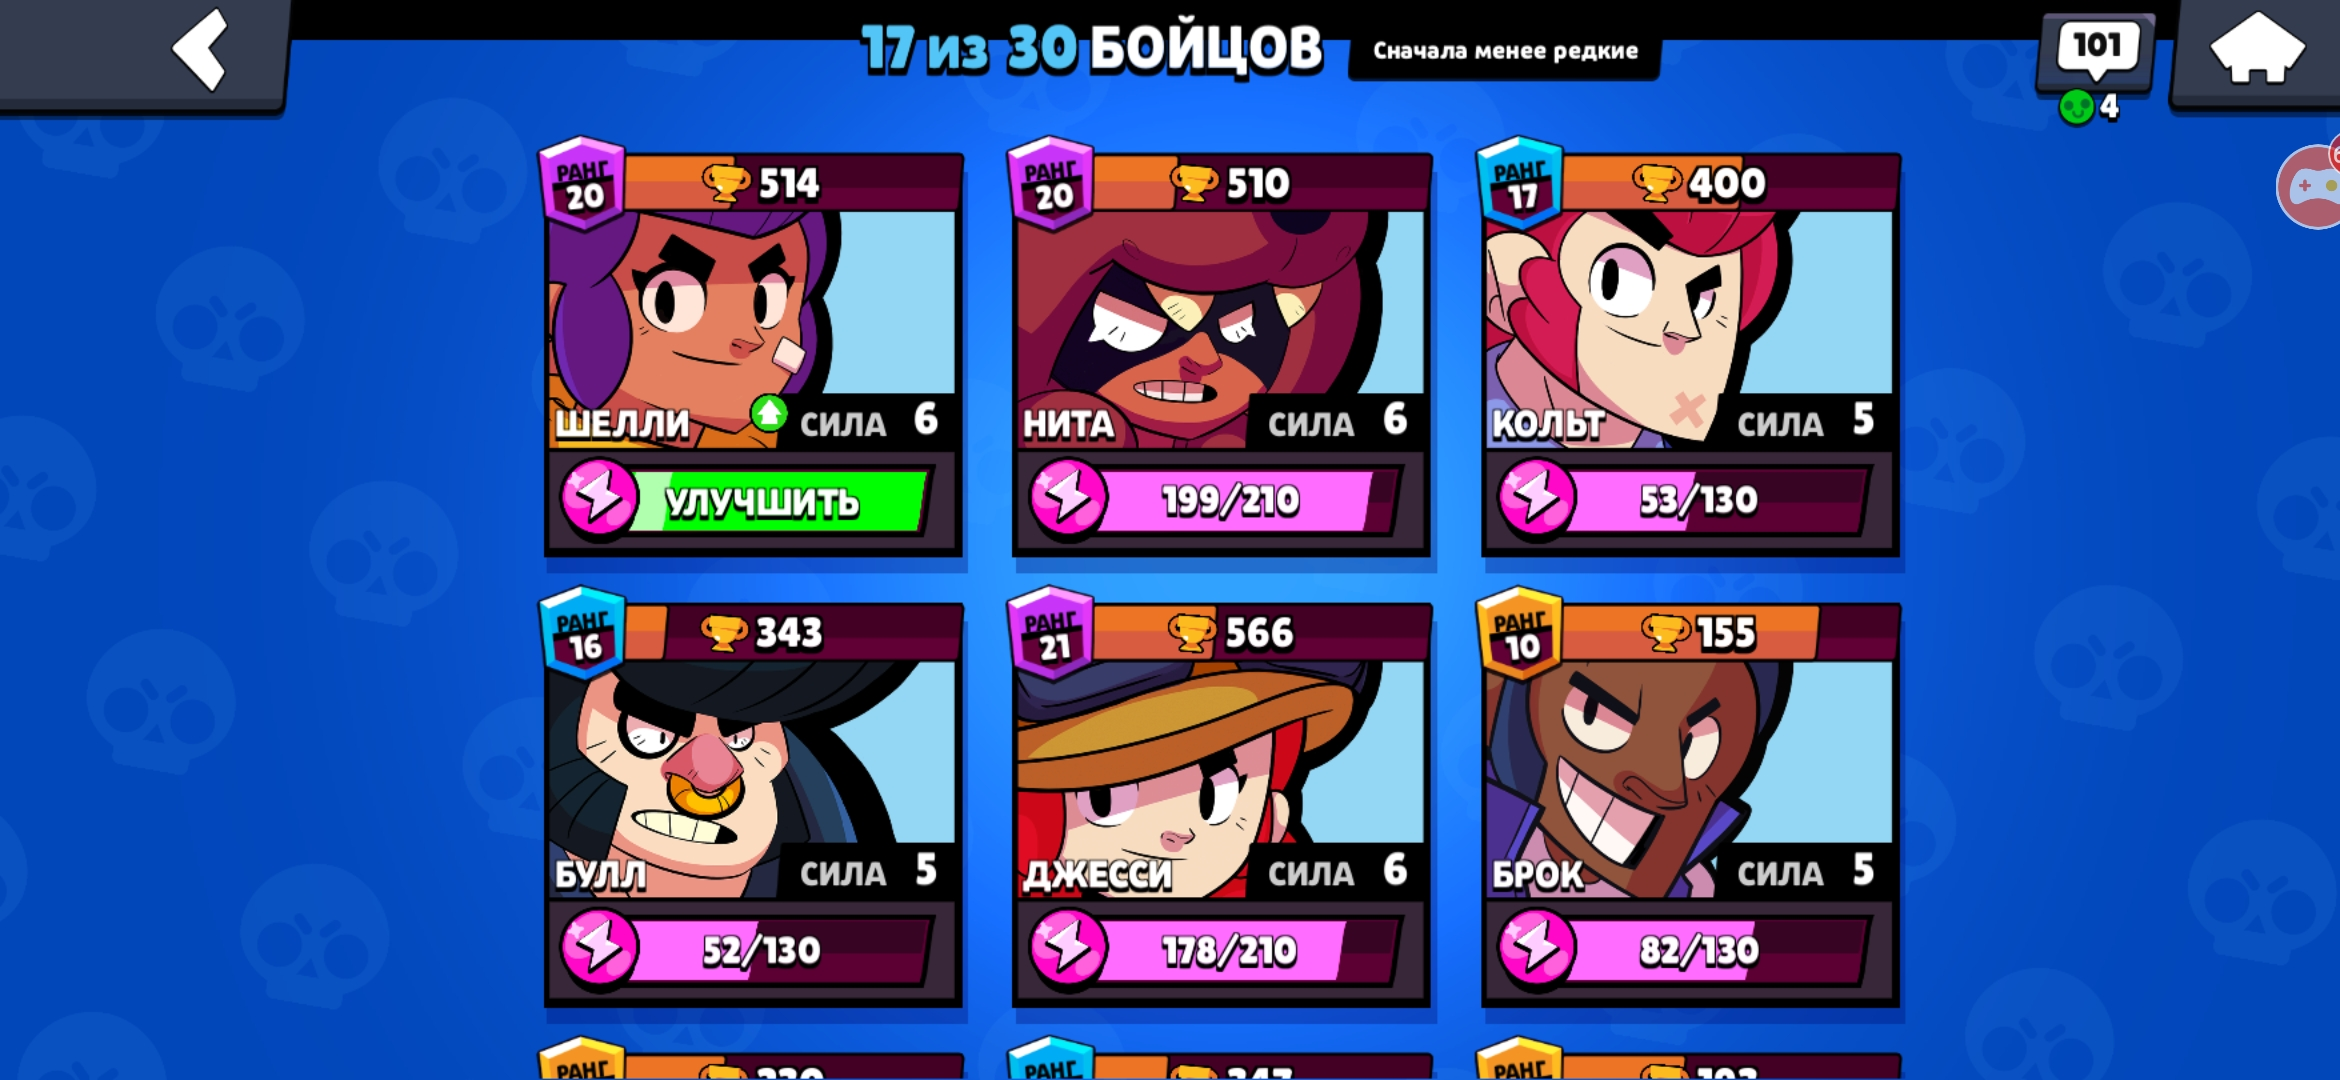 Brawl Stars | Account | 5009 trophies